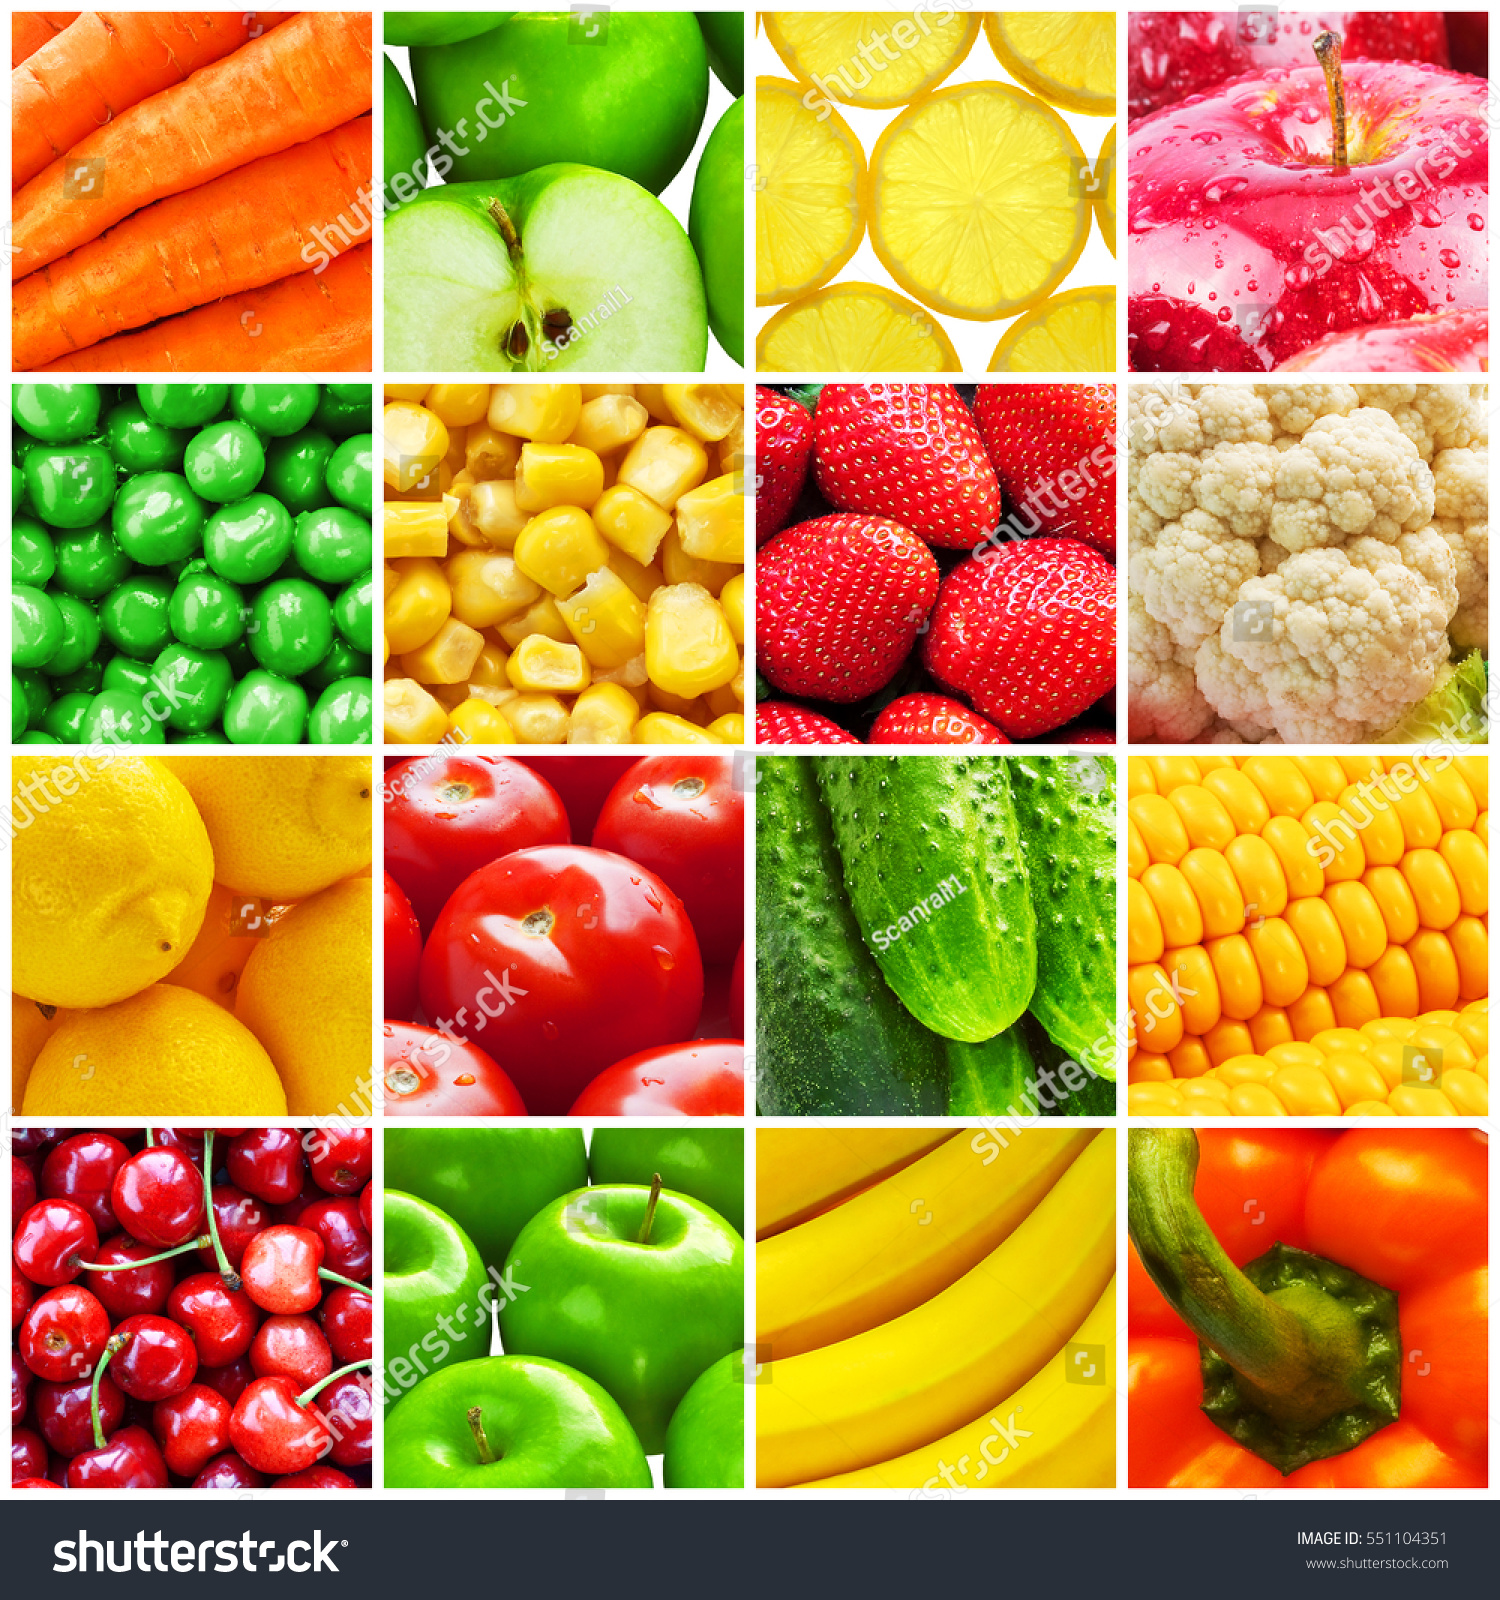 Eating and health - Healthy Life Eating And Health Food Vitamin Concept Collage From Fresh Fruits And Vegetables